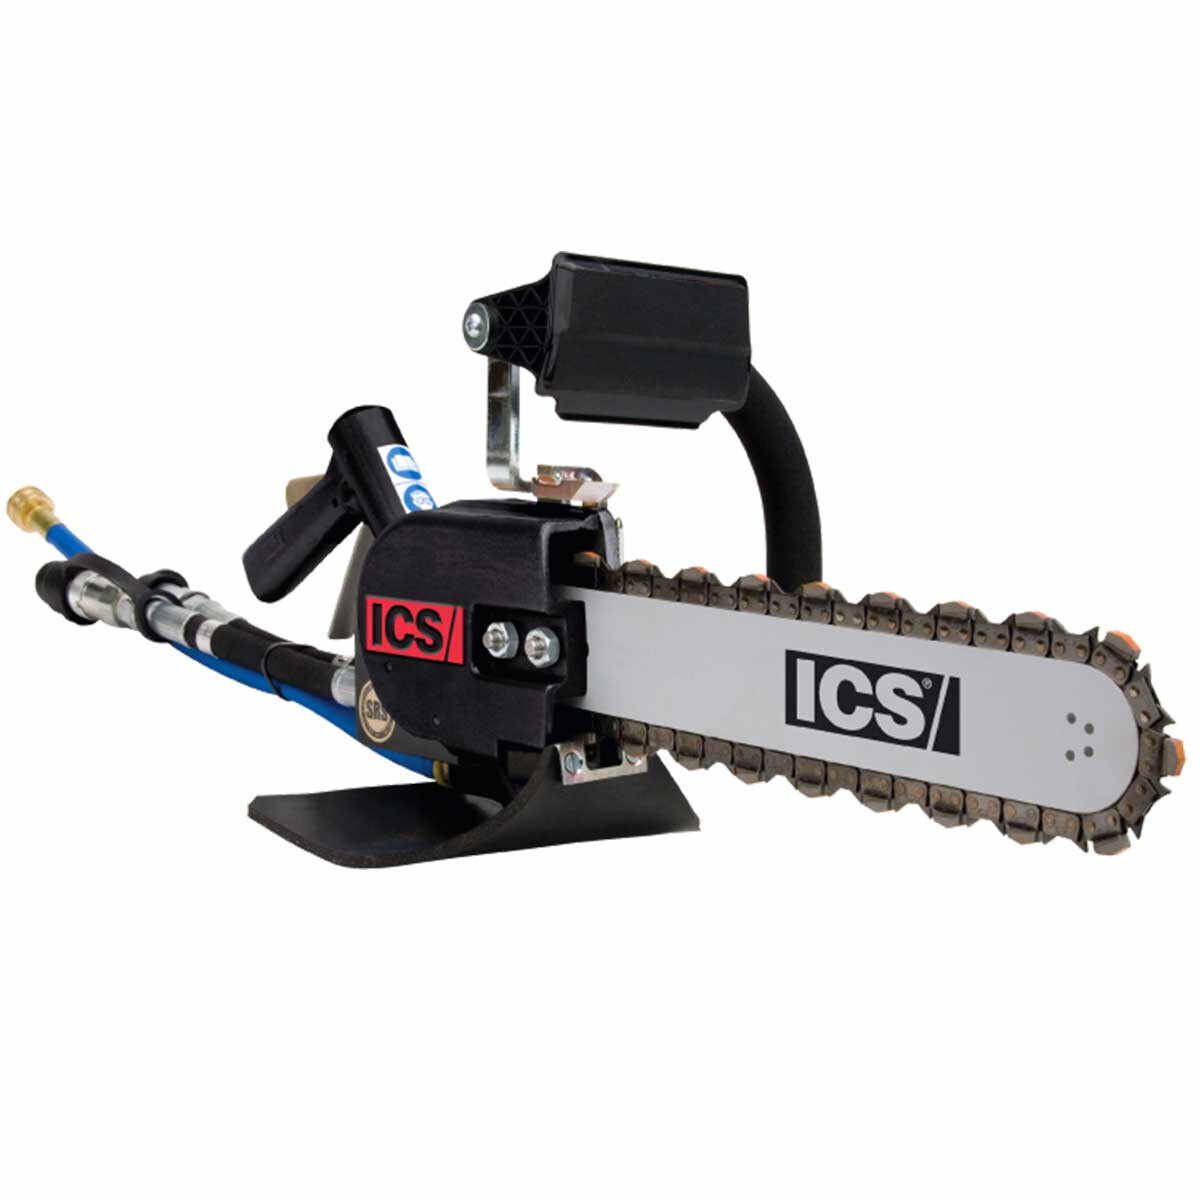 ICS 814Pro Concrete Chain Saw